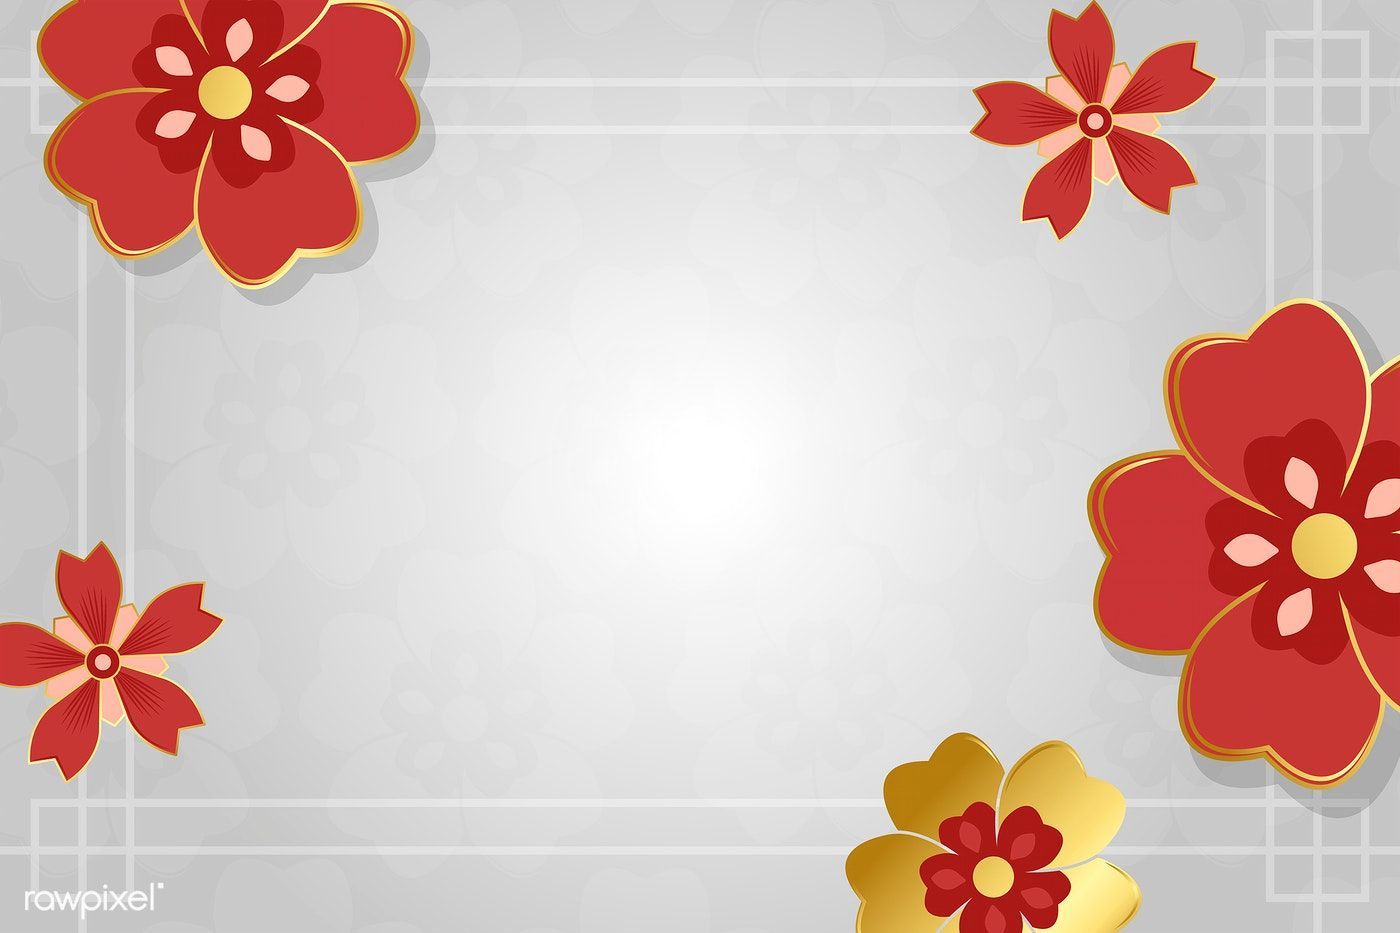 Chinese new year 2019 greeting background | free image by ...